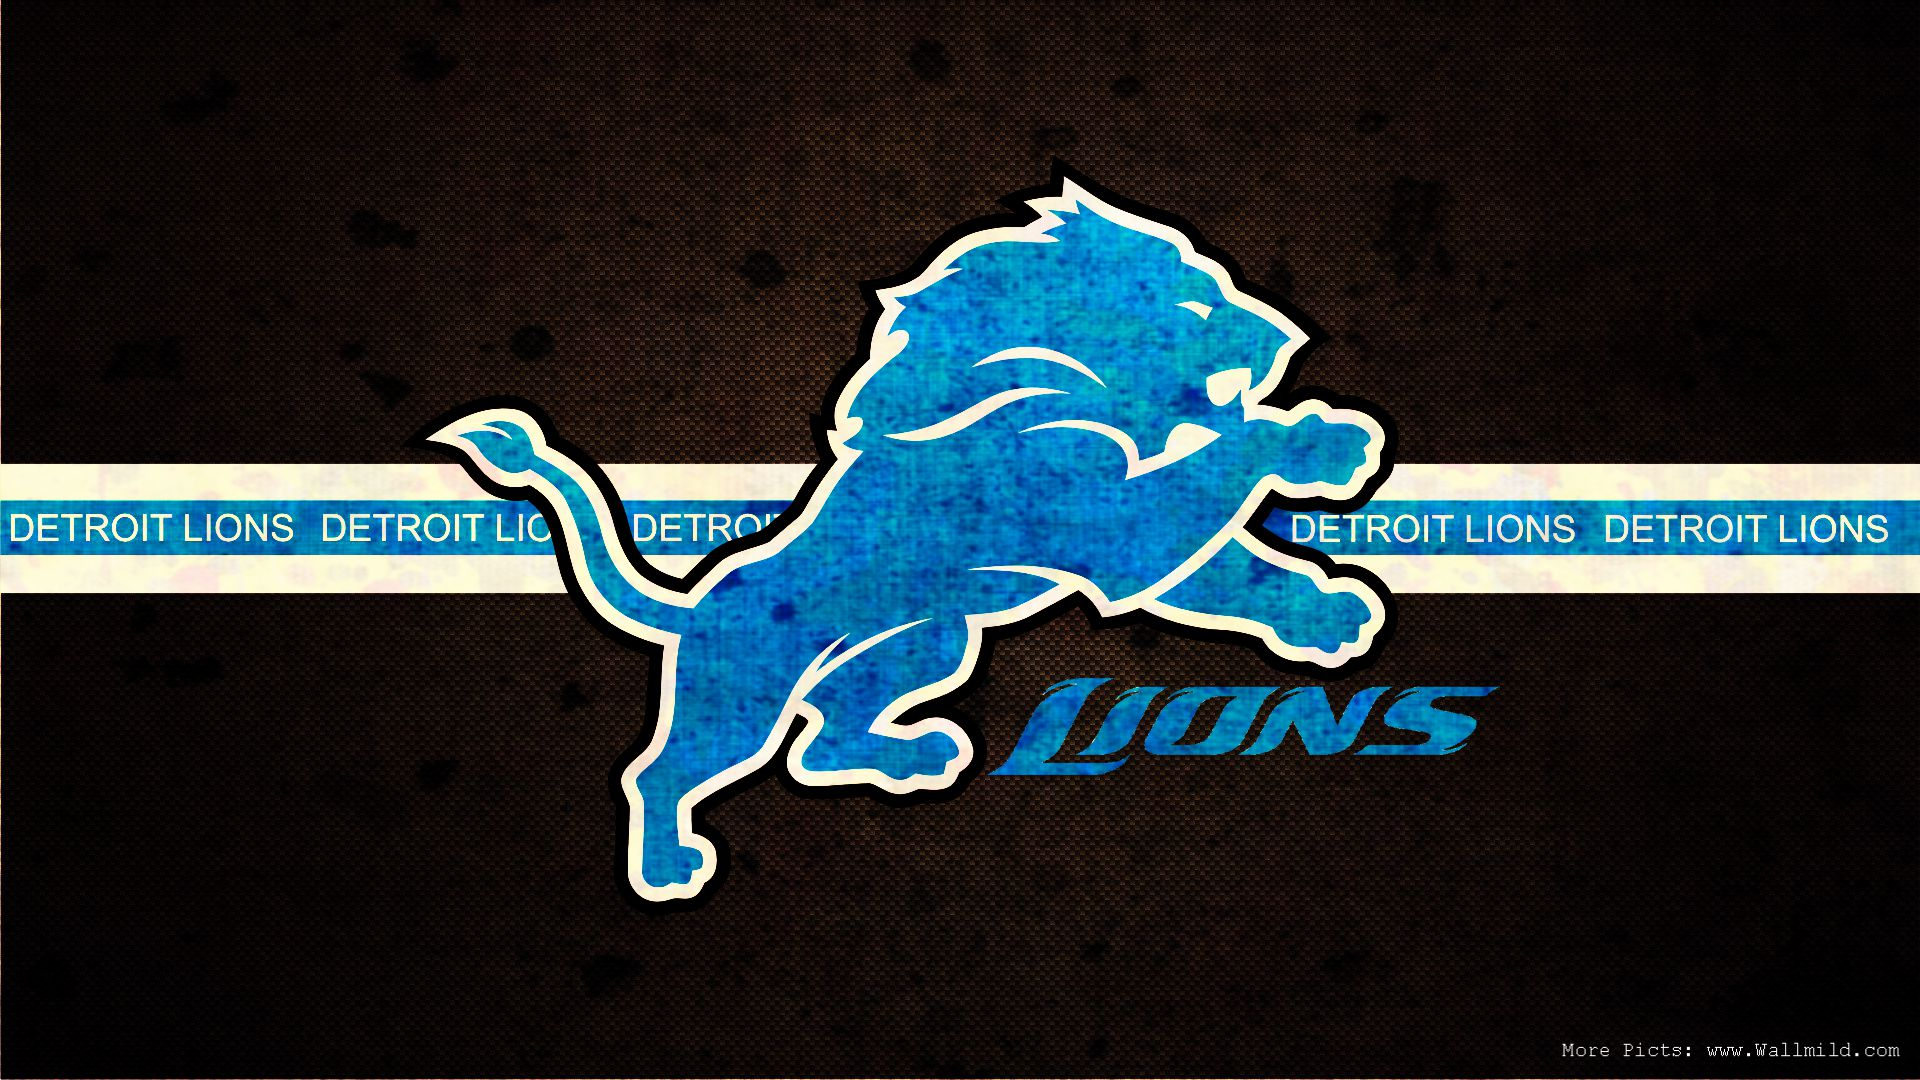 Detroit Lions NFL sign